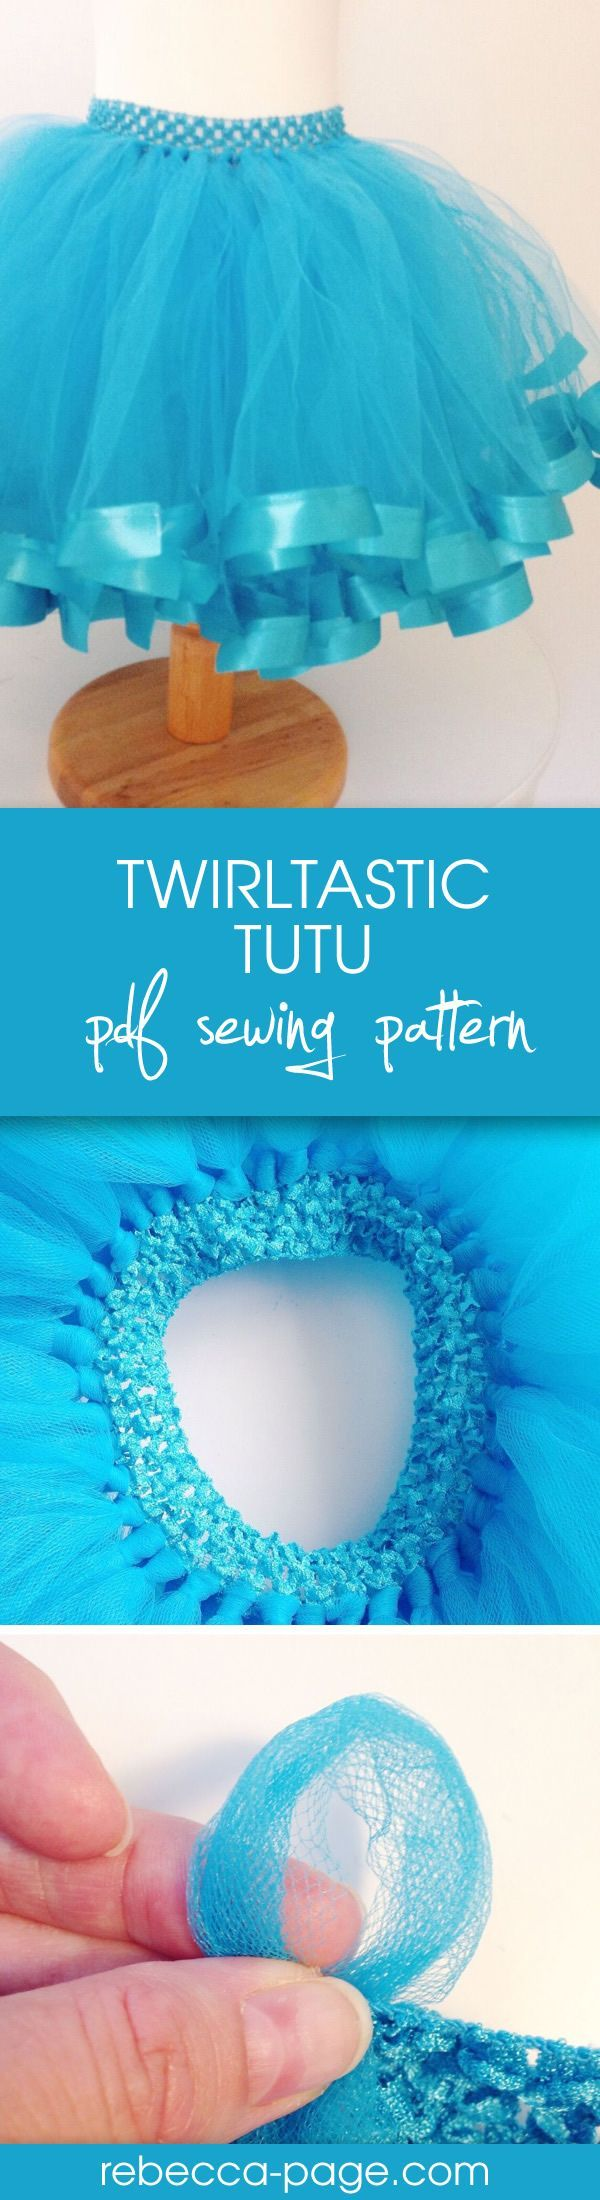 FREE Twirltastic Tutu pdf sewing pattern! Get the coupon code and make the cutest ribbon tutu about. With yards of tulle and super curly ribbon, it's literally twirltastic.  There's an tutorial option for either a ribbon waistband, or a crochet band/headb